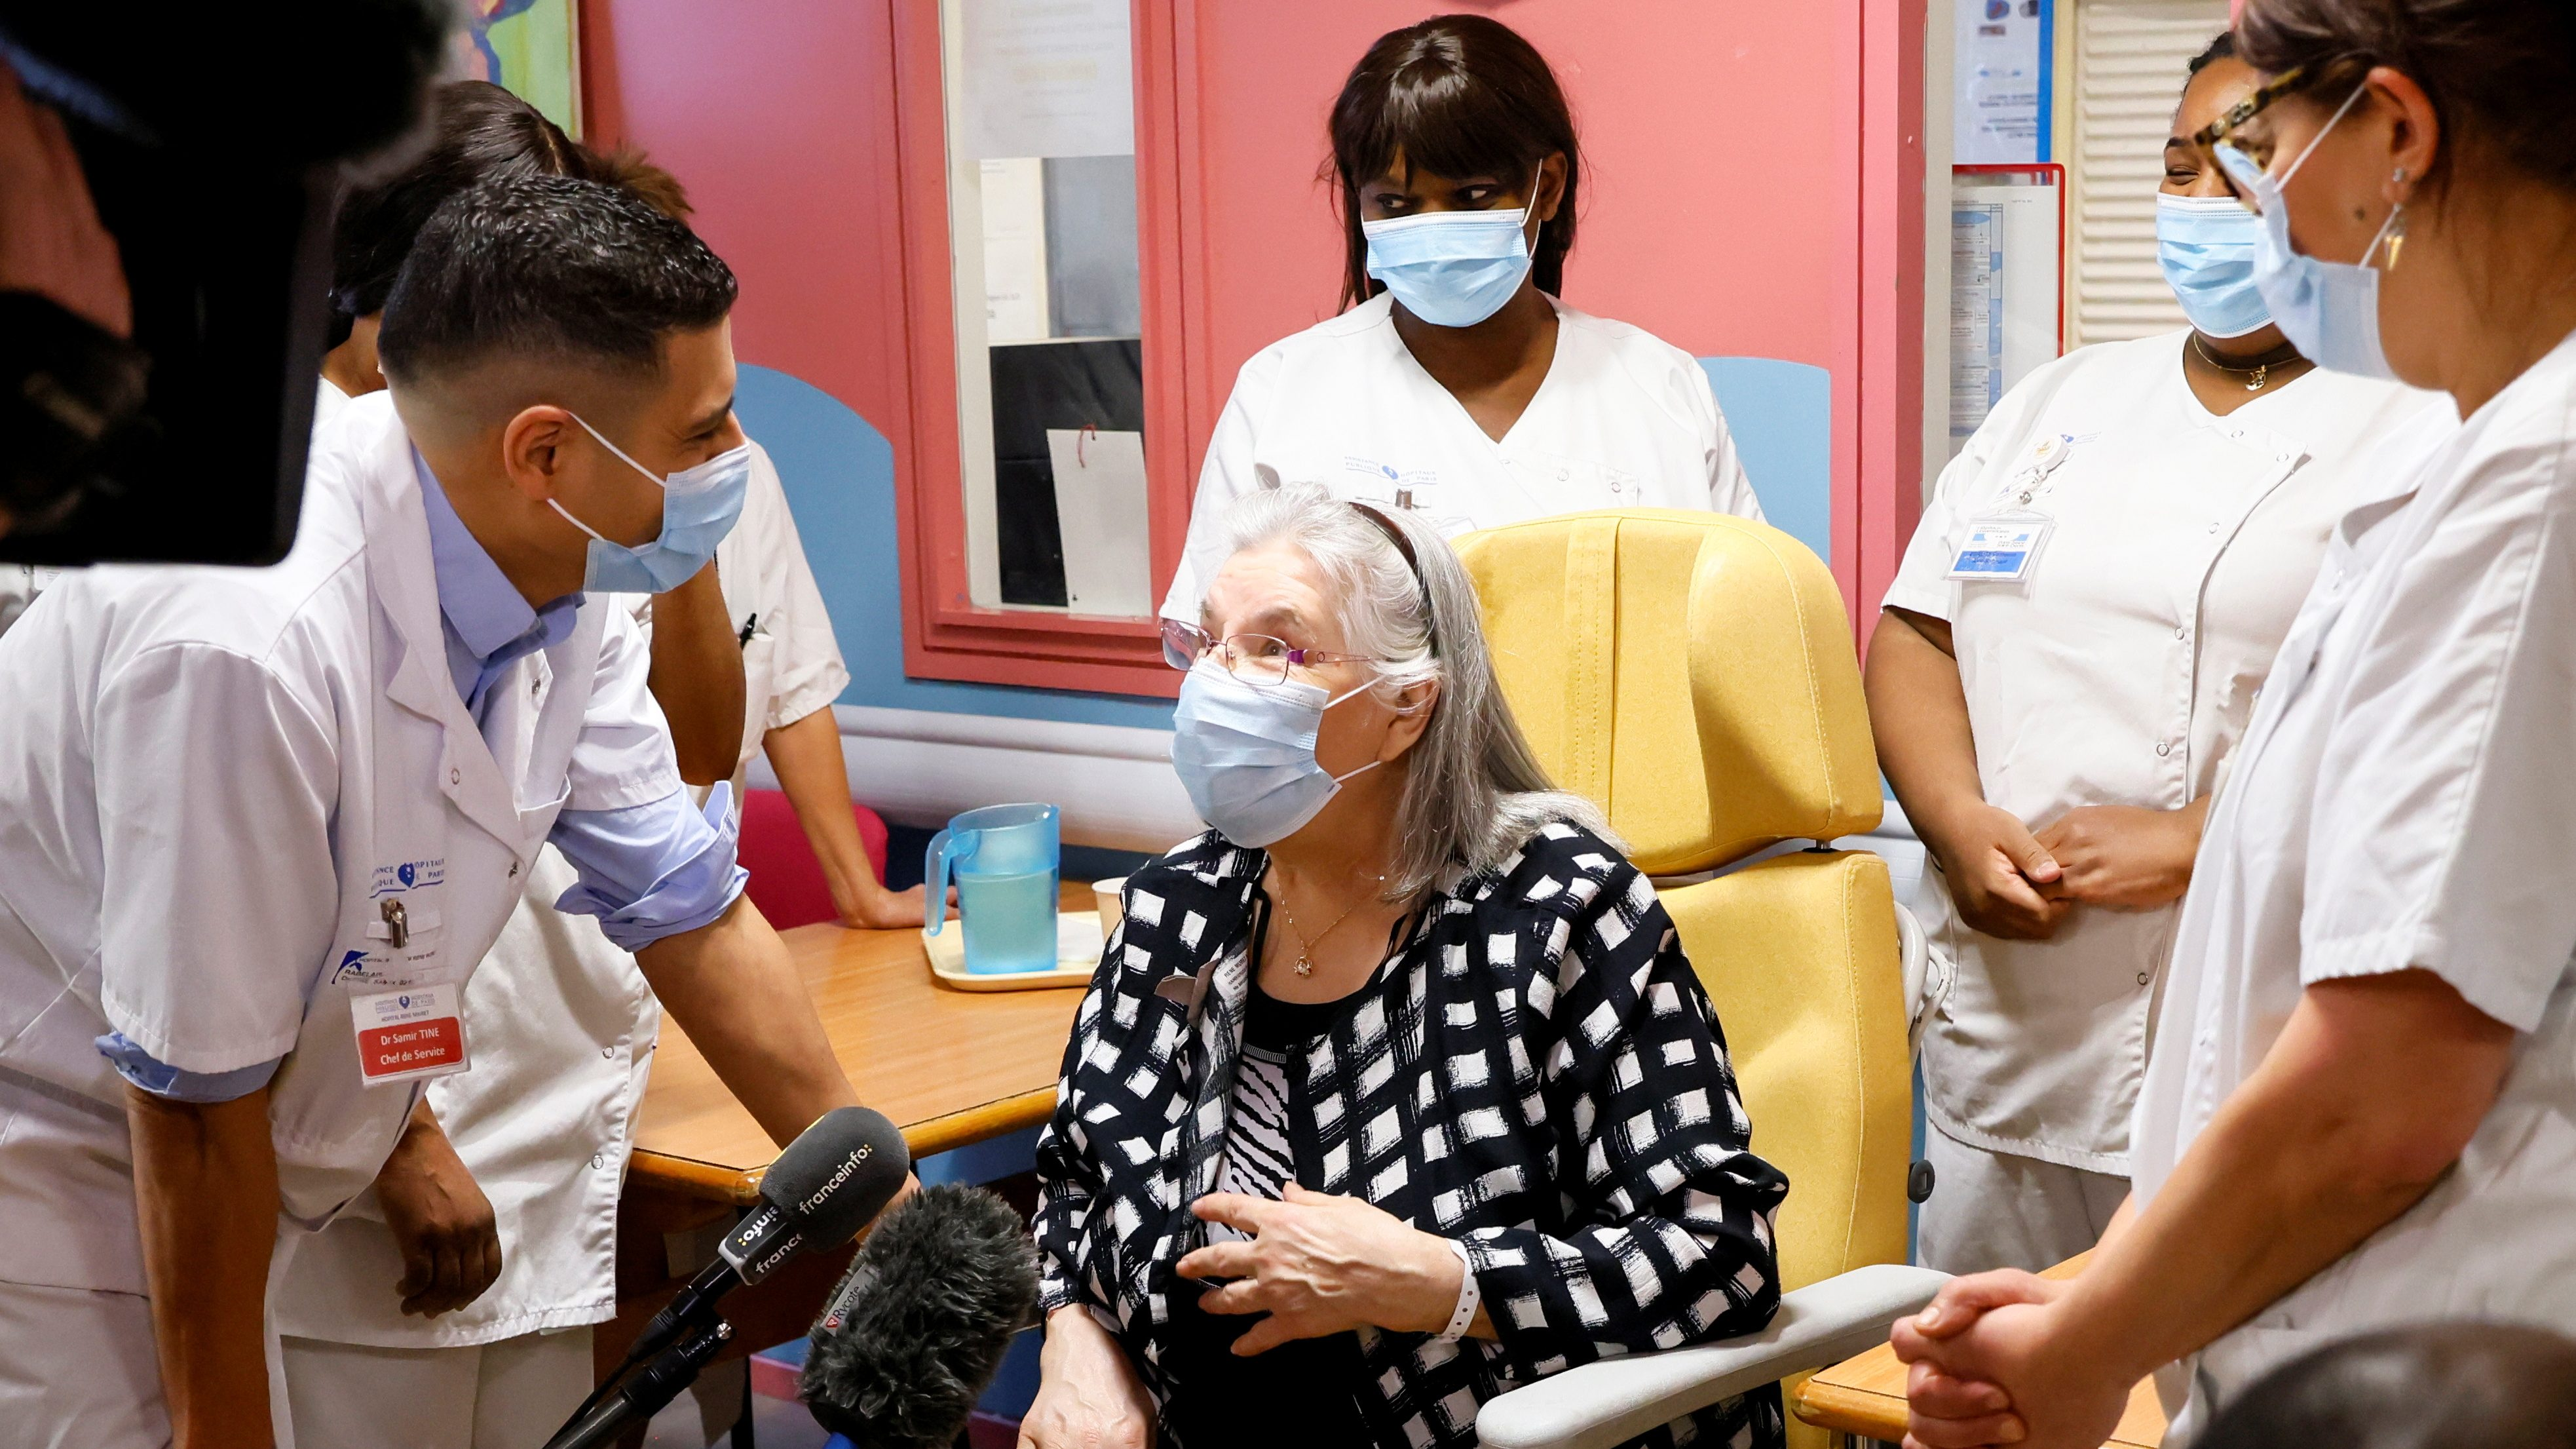 A 78-year-old French woman speaks with medical staff